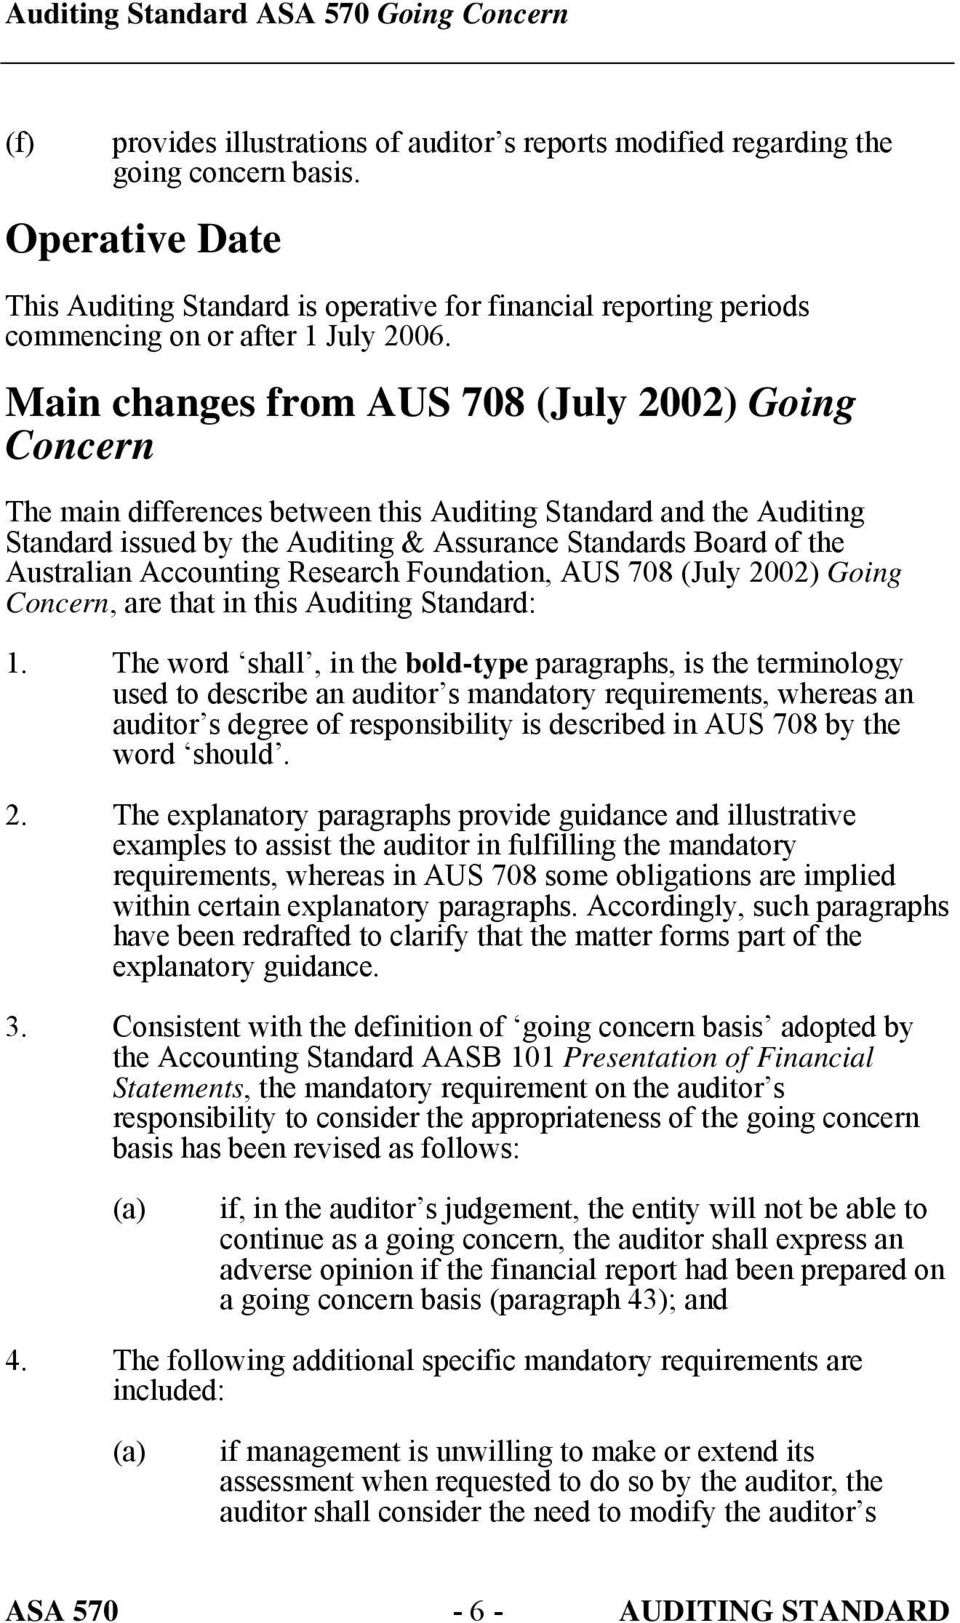 Main changes from AUS 708 (July 2002) Going Concern The main differences between this Auditing Standard and the Auditing Standard issued by the Auditing & Assurance Standards Board of the Australian